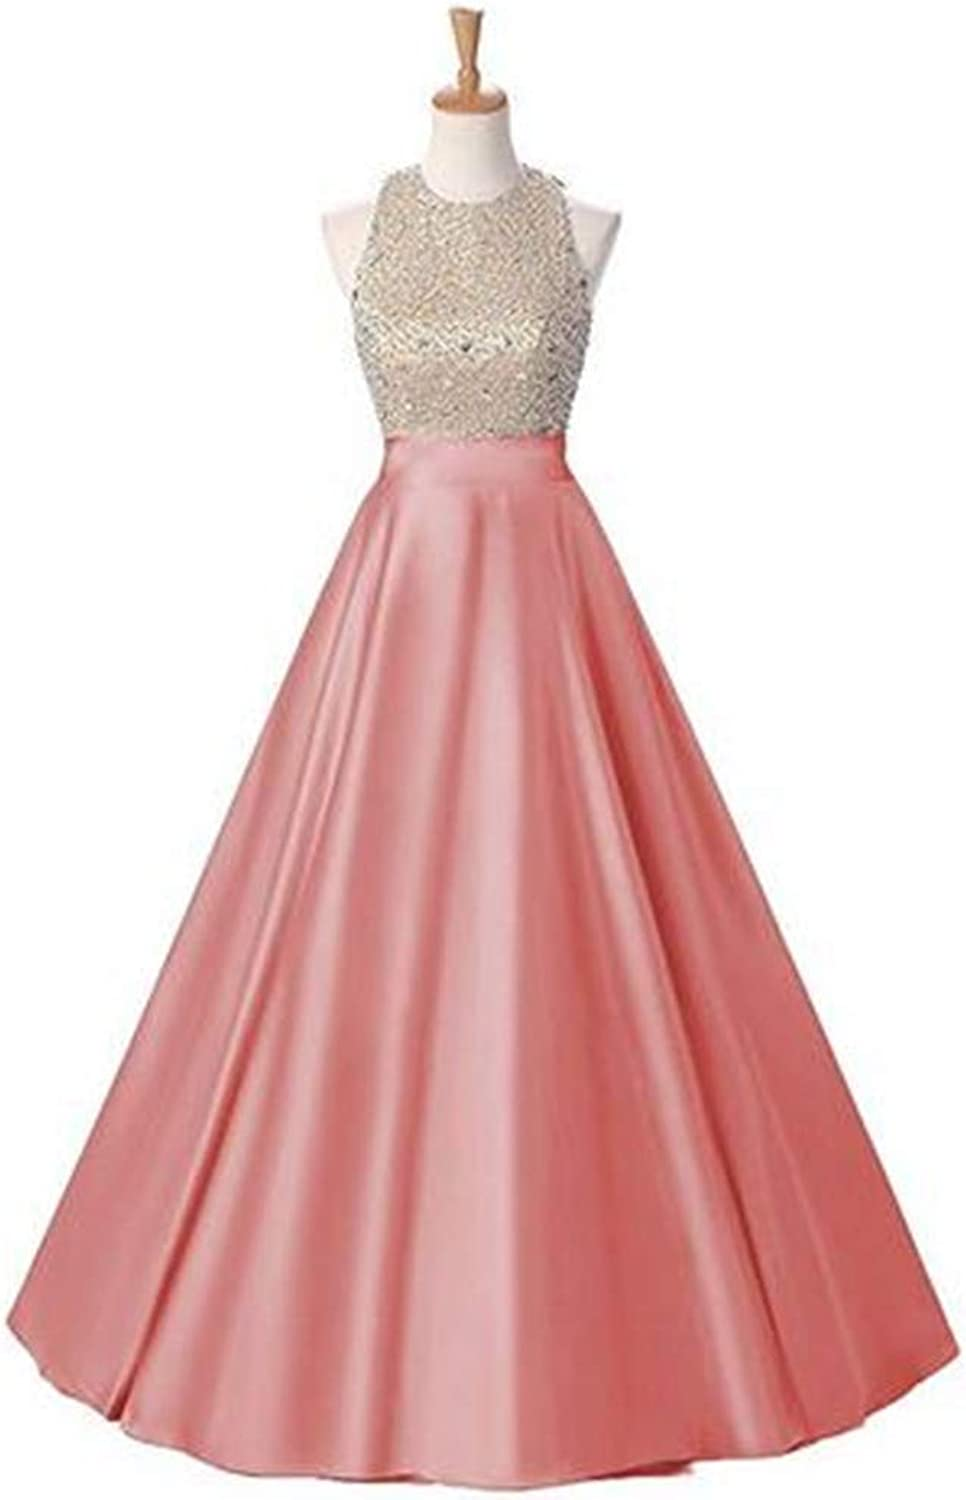 Aline Beaded Backless Formal Wedding Party Prom Dress